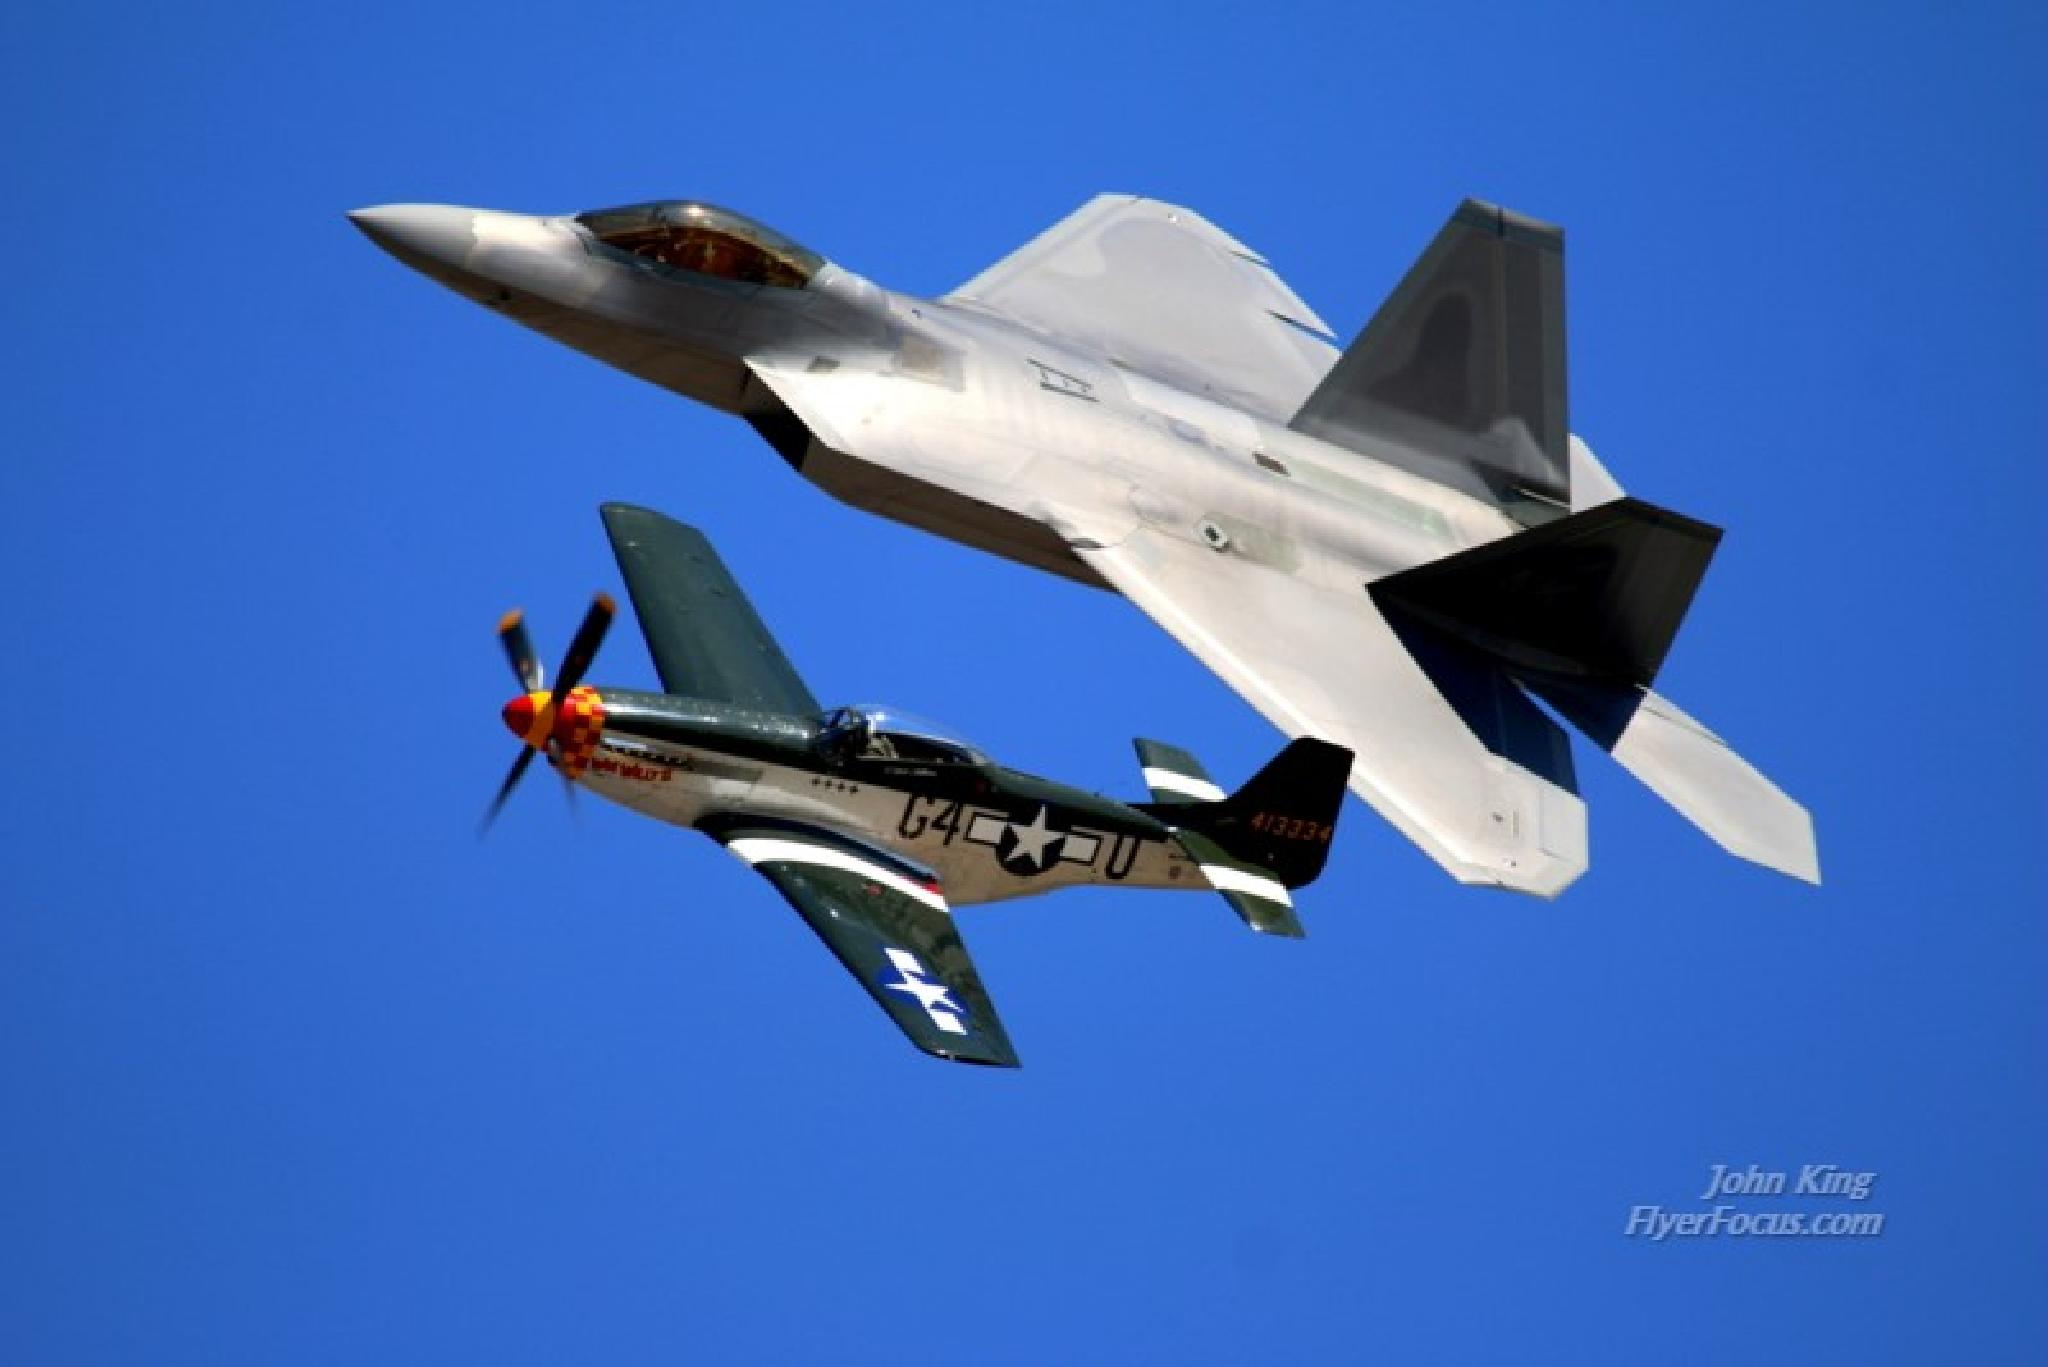 P51 Mustang and F22 Stealth Raptor at Reno Air Races' Heritage Flight by John King